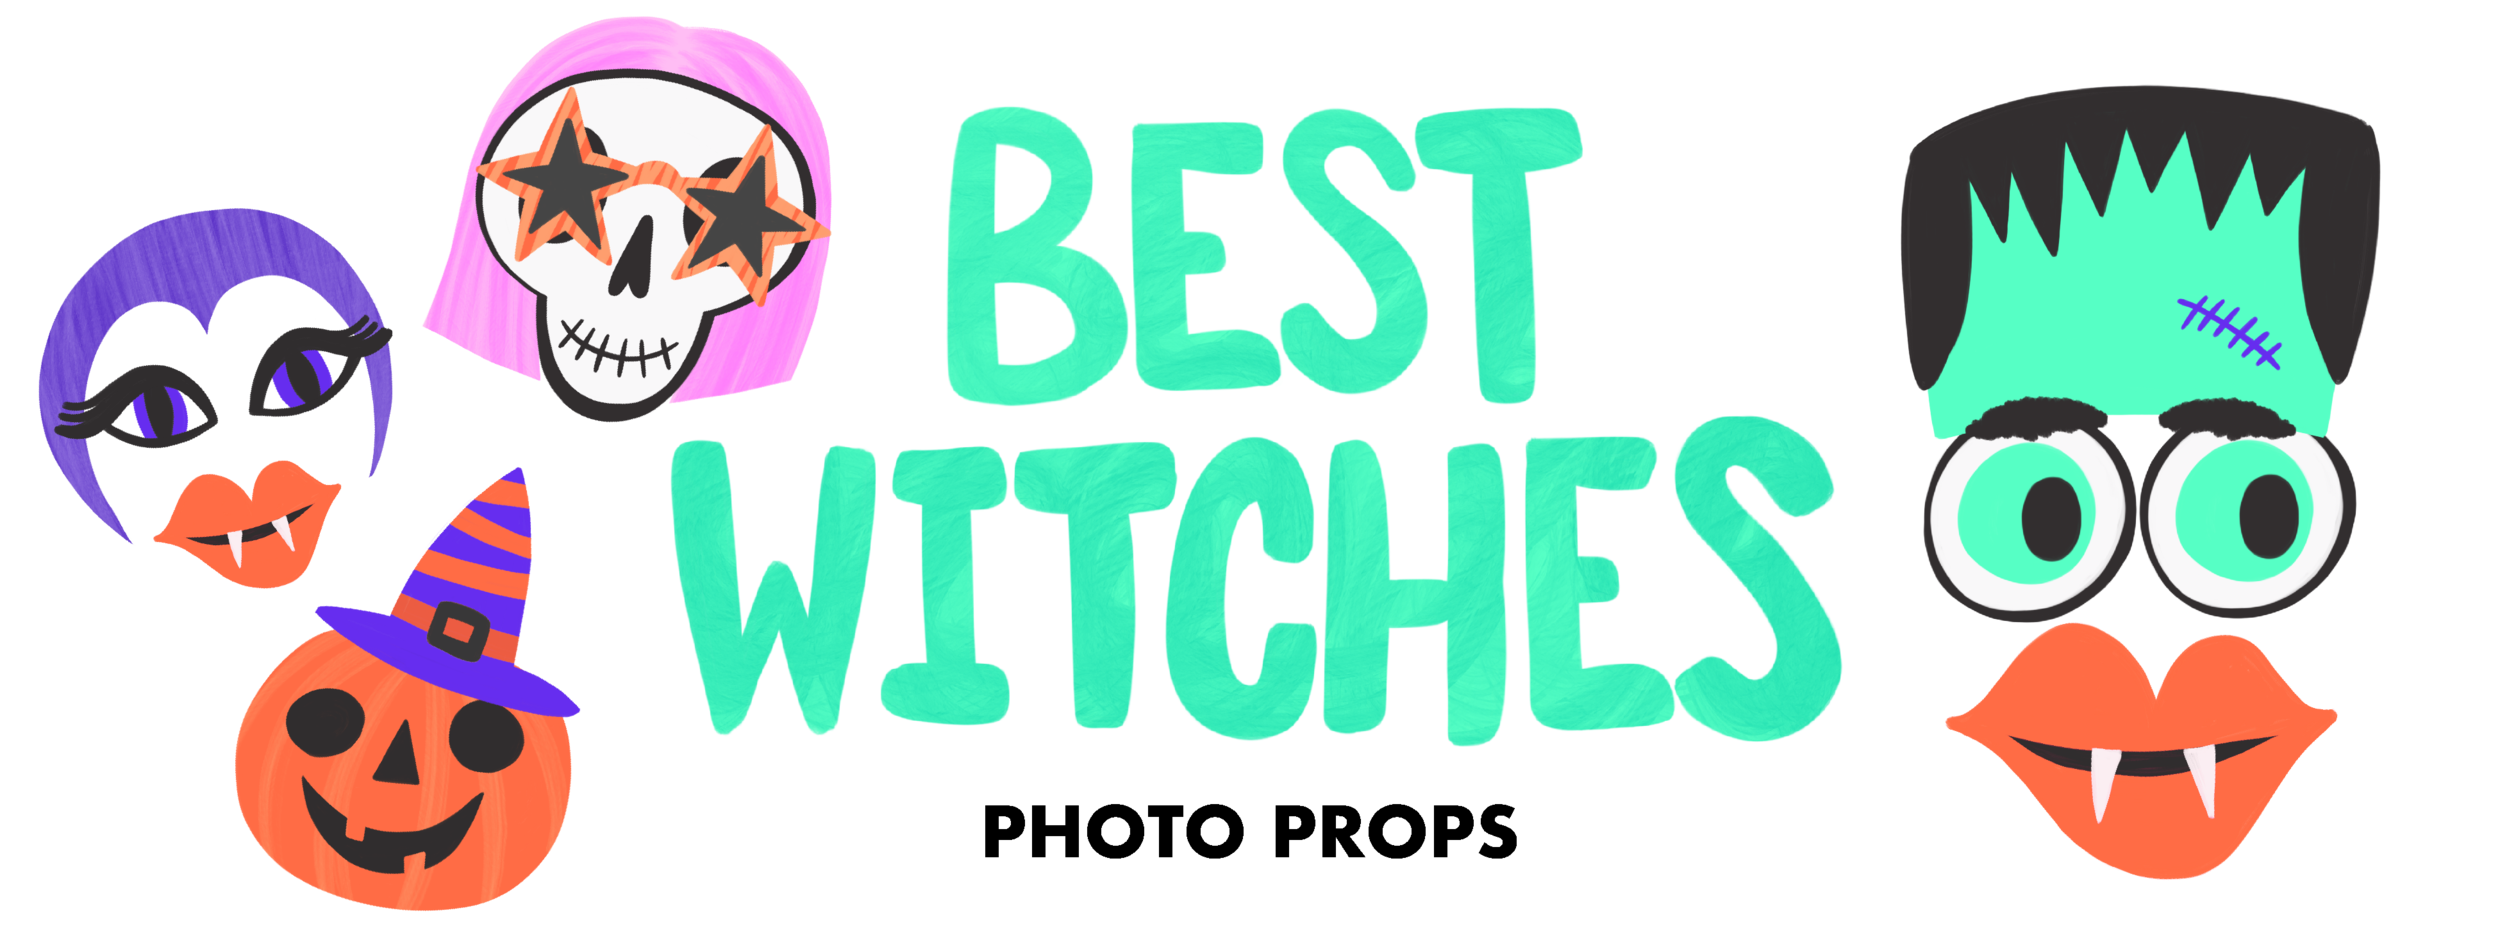 best witches by Bryna Shields